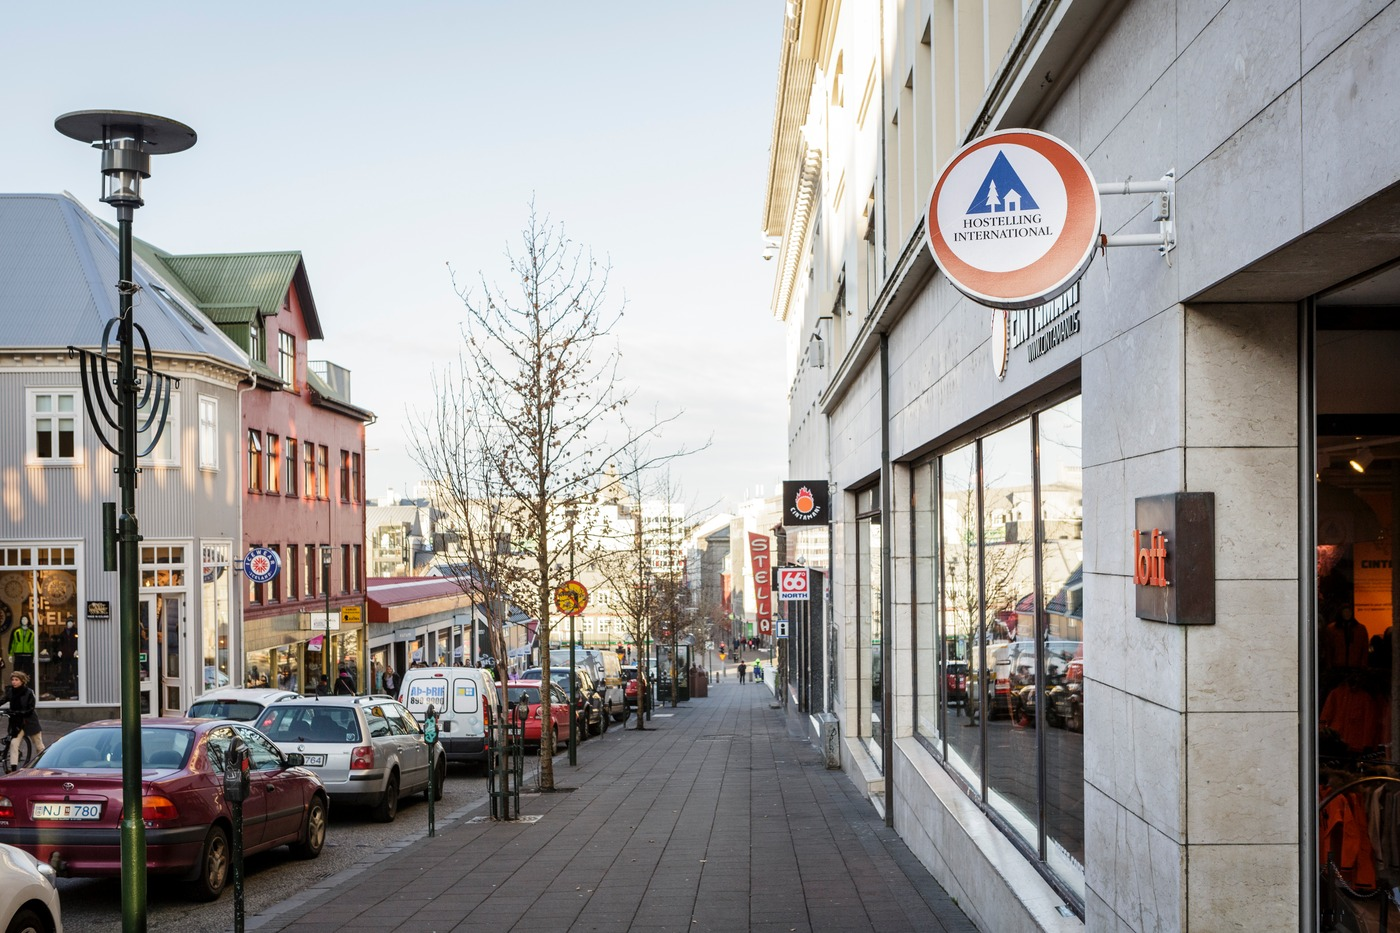 HI Loft Hostel is located right between the downtown area and Laugavegur shopping street.